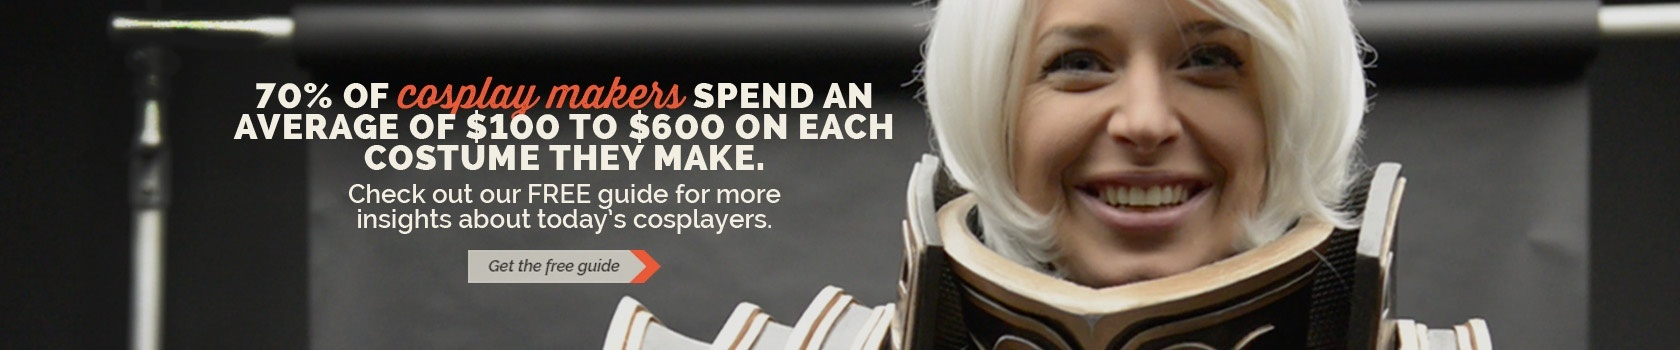 70-percent-of-cosplay-makers-spend-100-to-600-dollars-on-costume